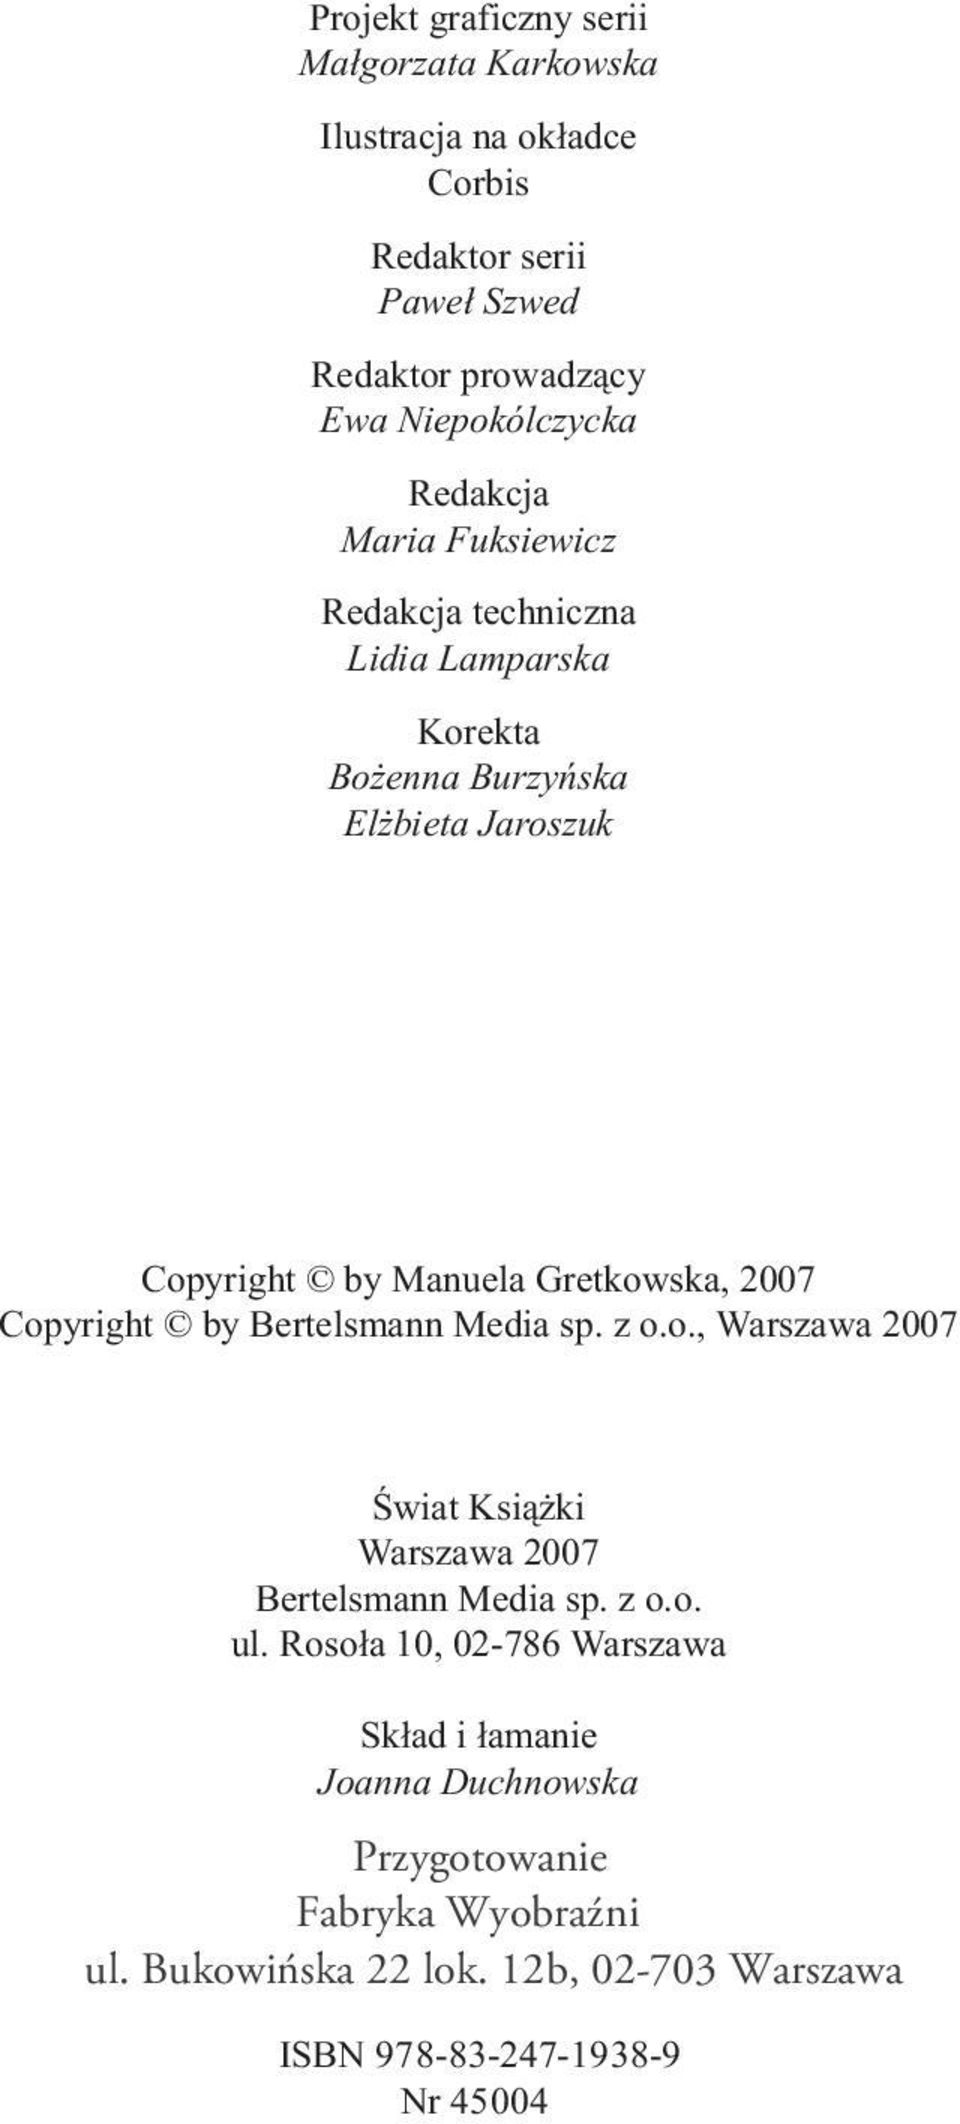 2007 Copyright by Bertelsmann Media sp. z o.o., Warszawa 2007 Œwiat Ksi¹ ki Warszawa 2007 Bertelsmann Media sp. z o.o. ul.